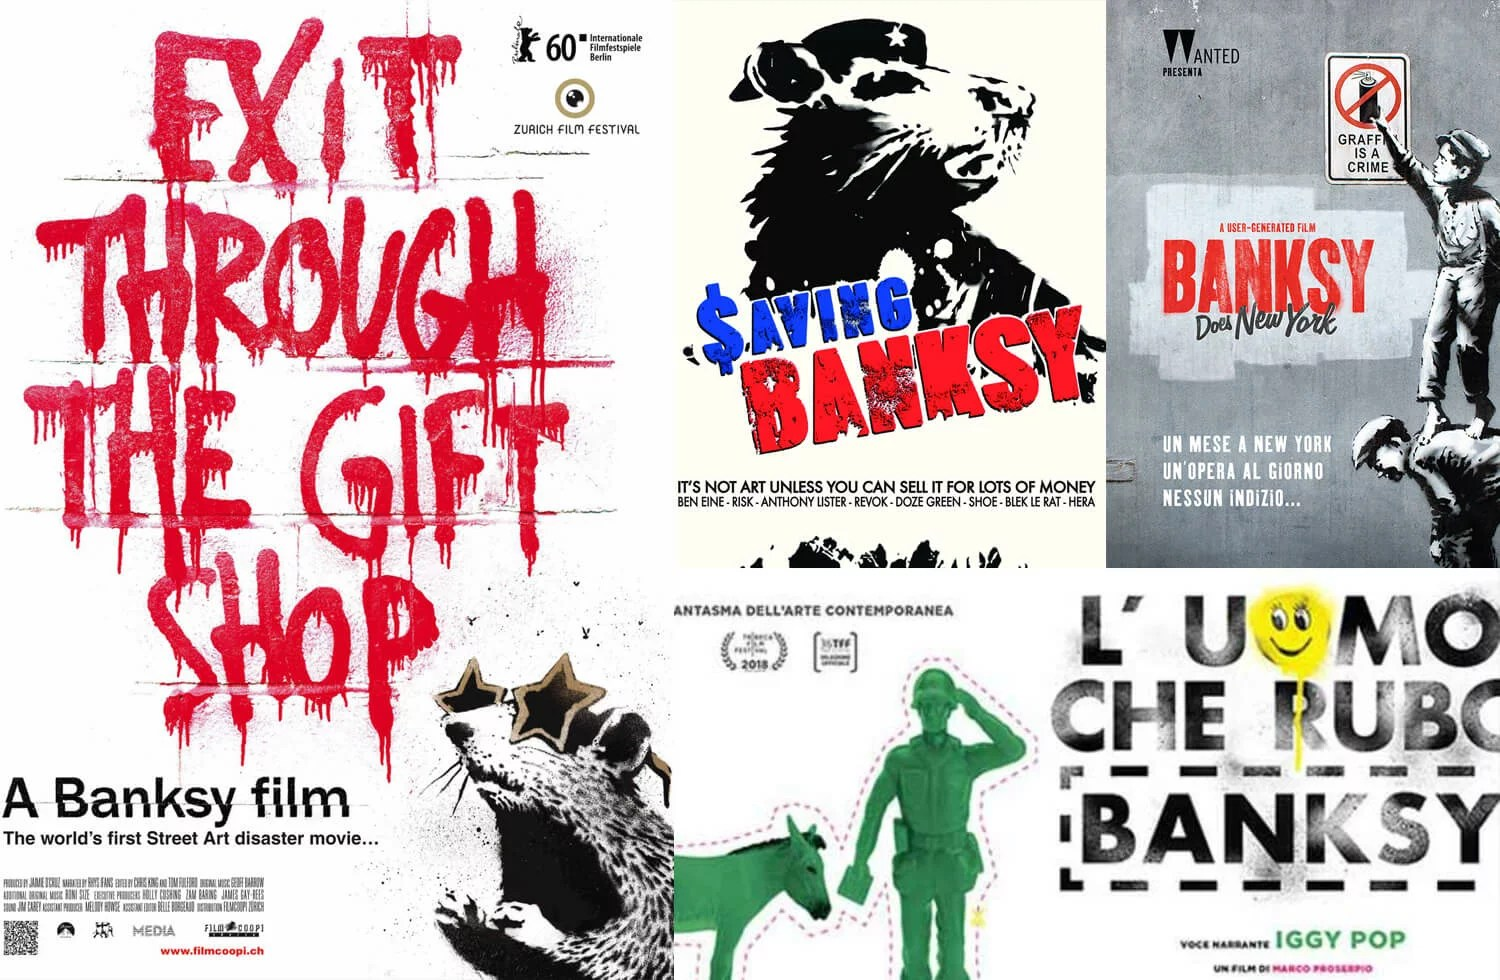 Copertina-Film-Documentari-Su-Banksy